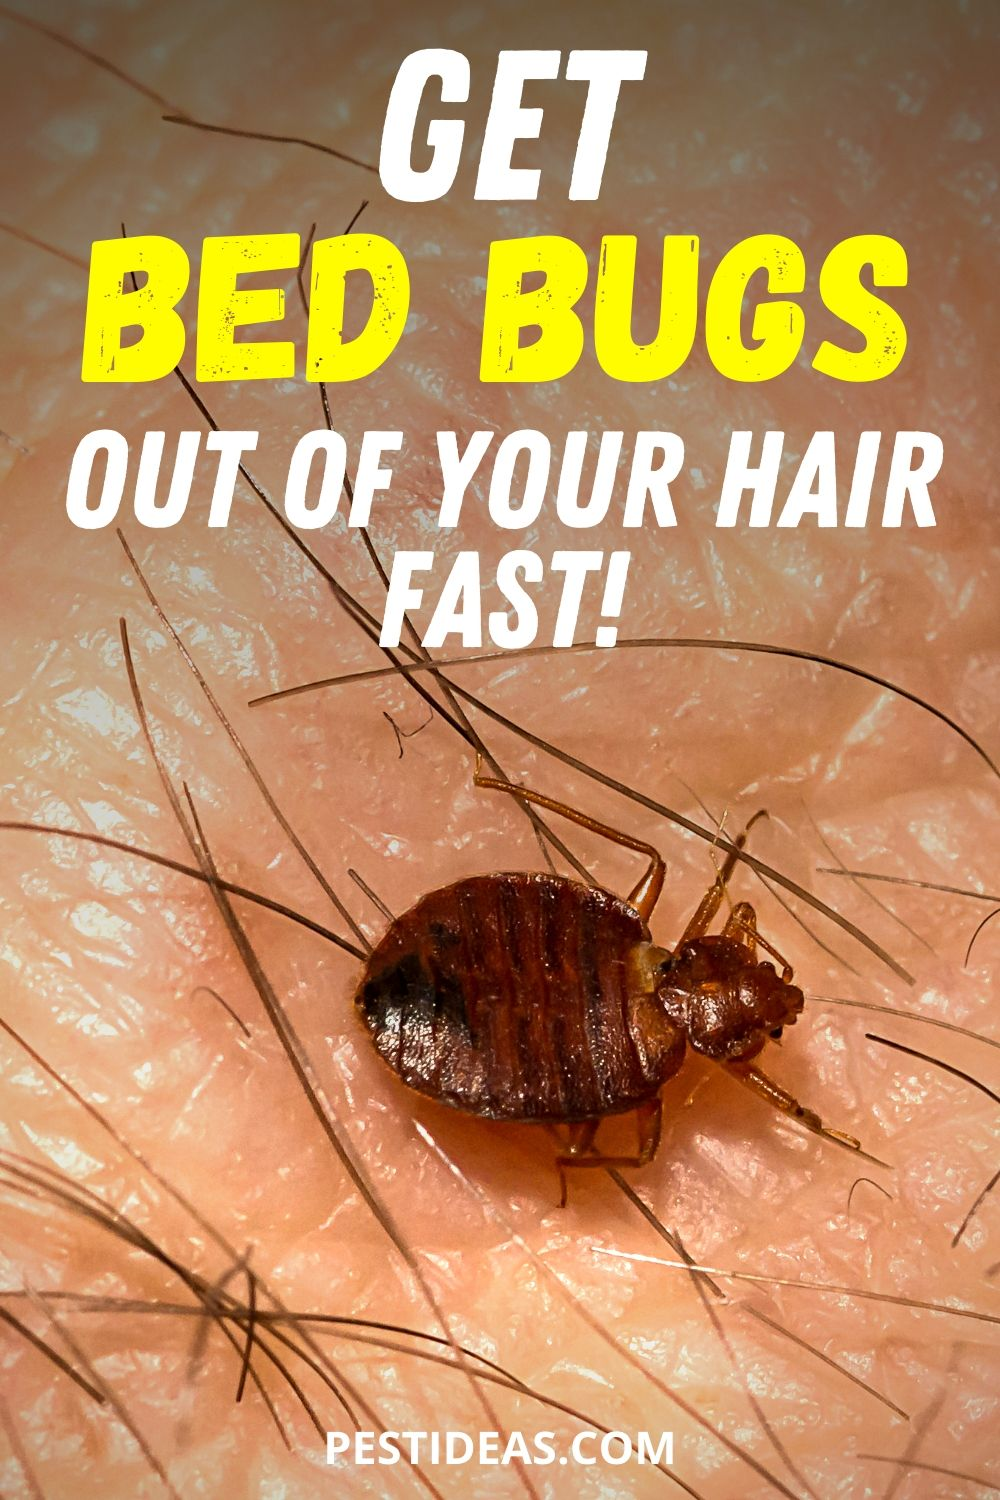 Get bed bugs out of your hair